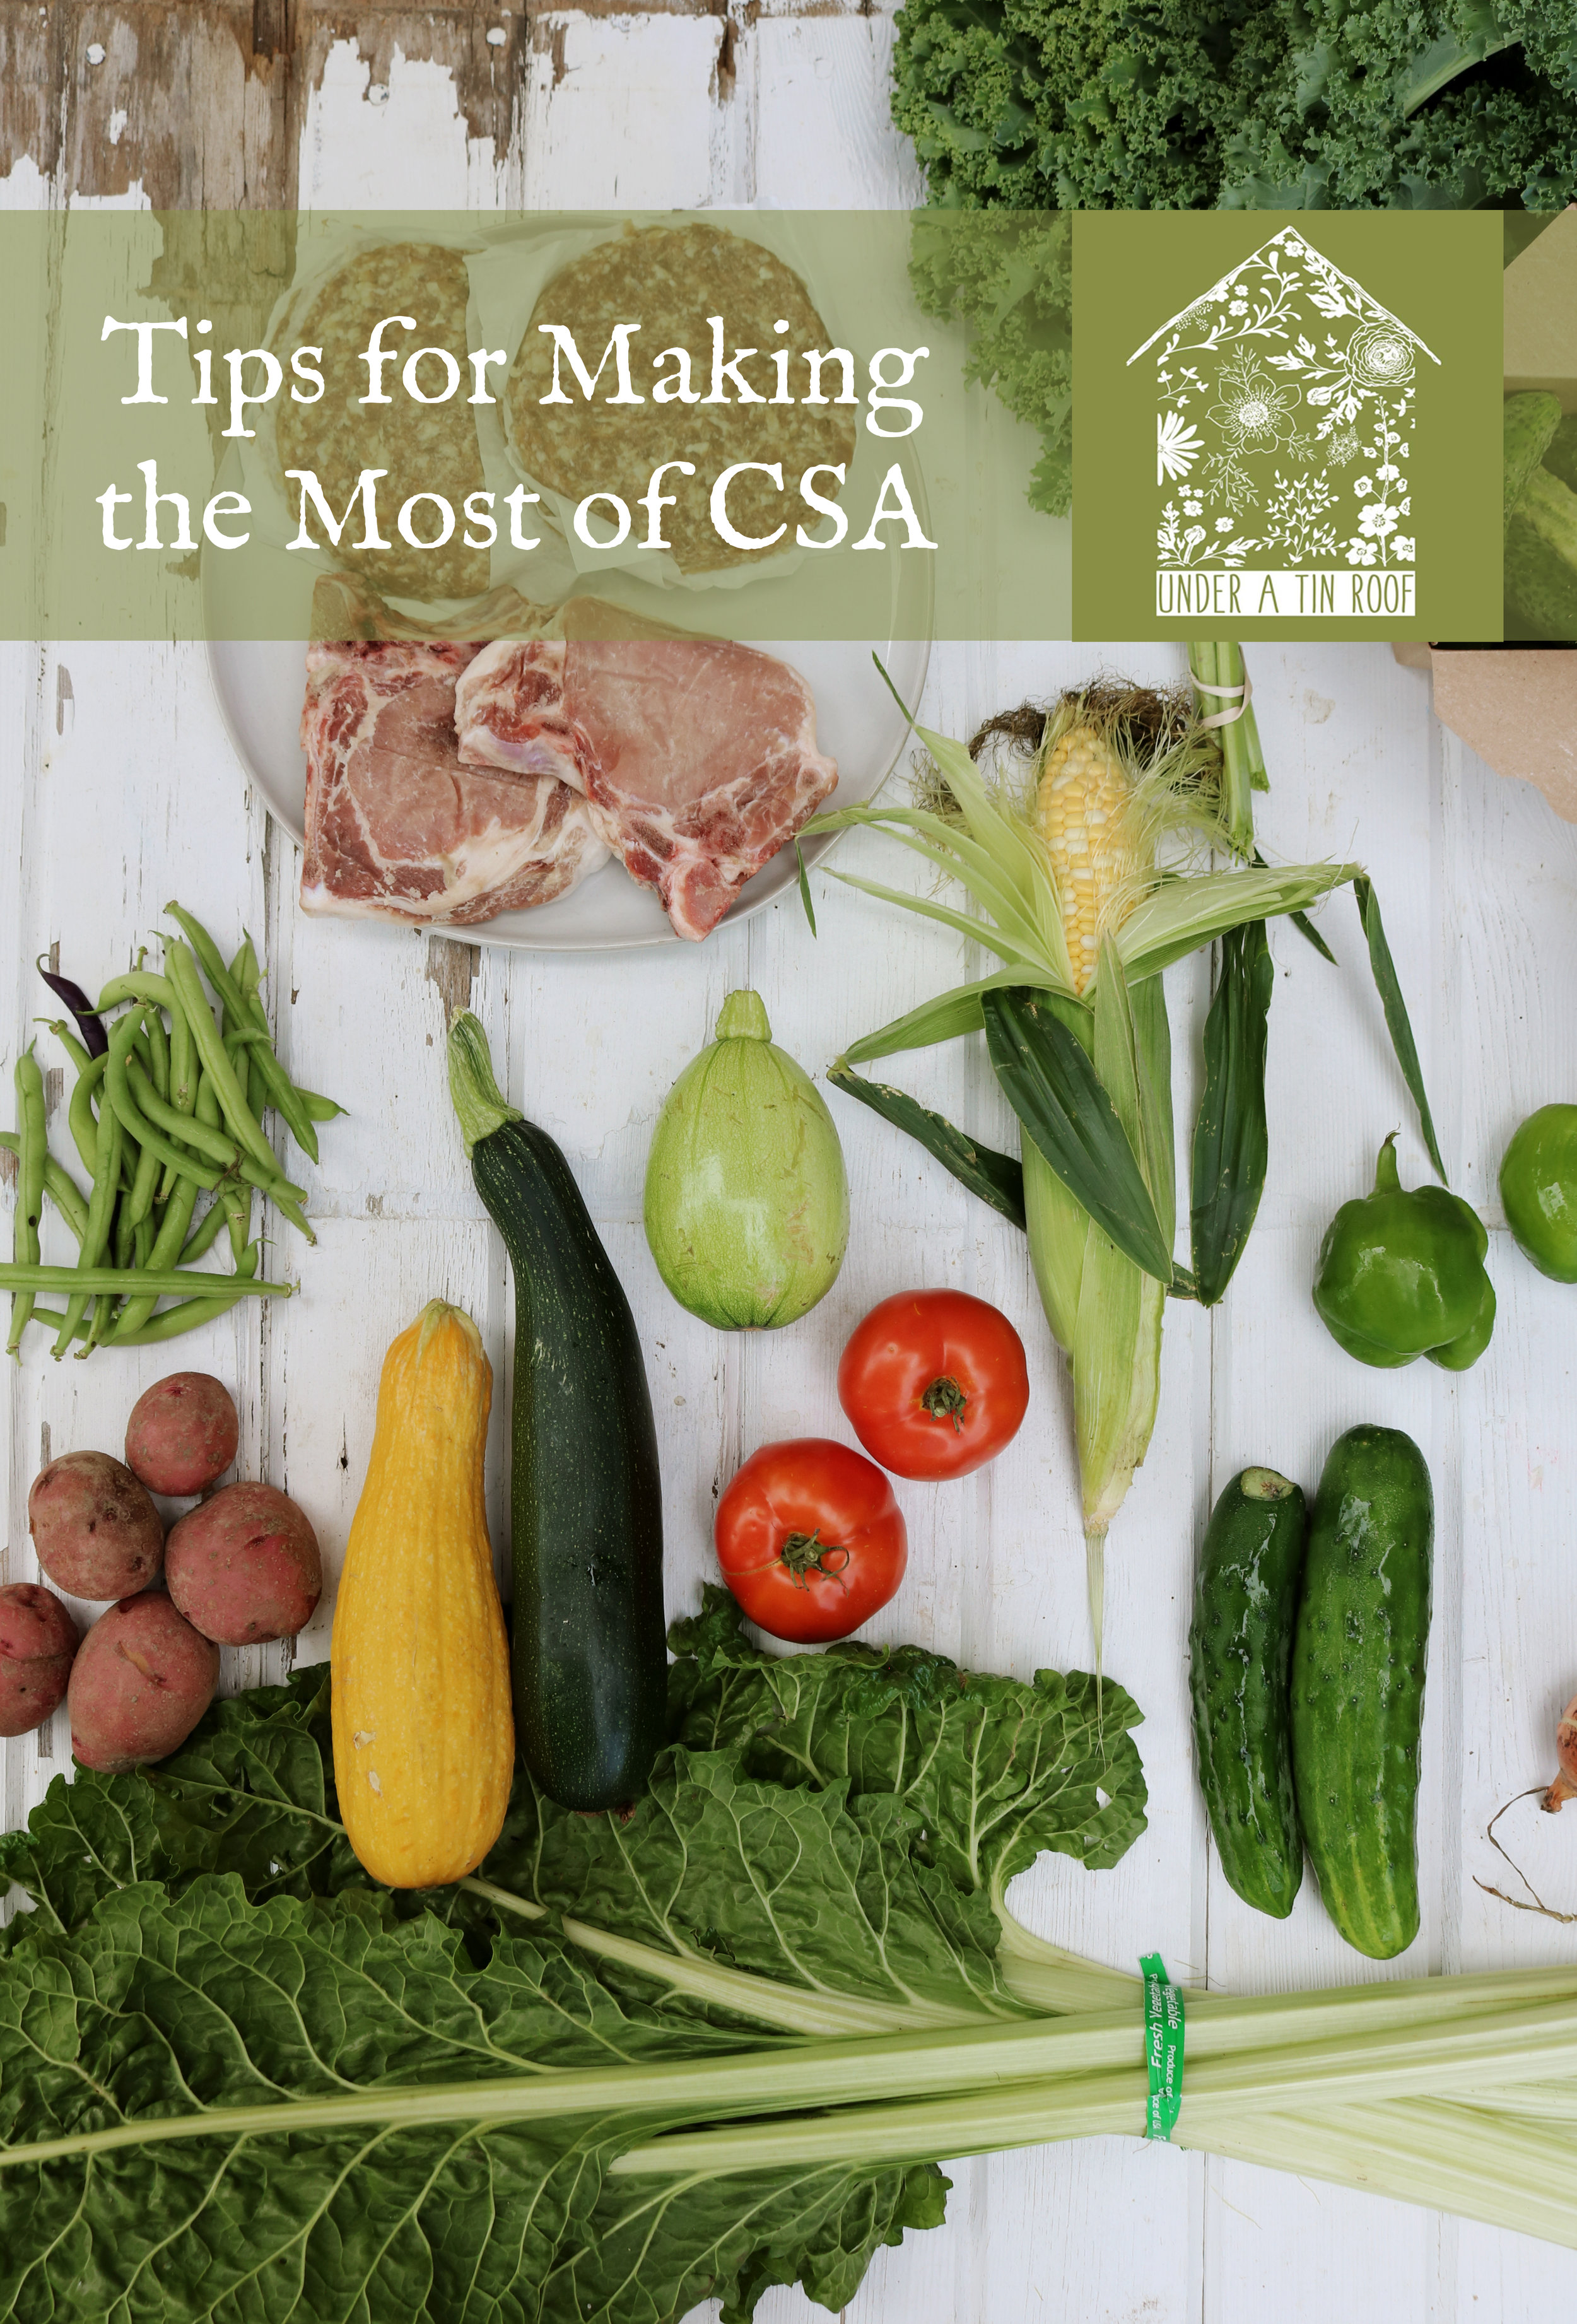 Tips for Making the Most of CSA - Under A Tin Roof Blog